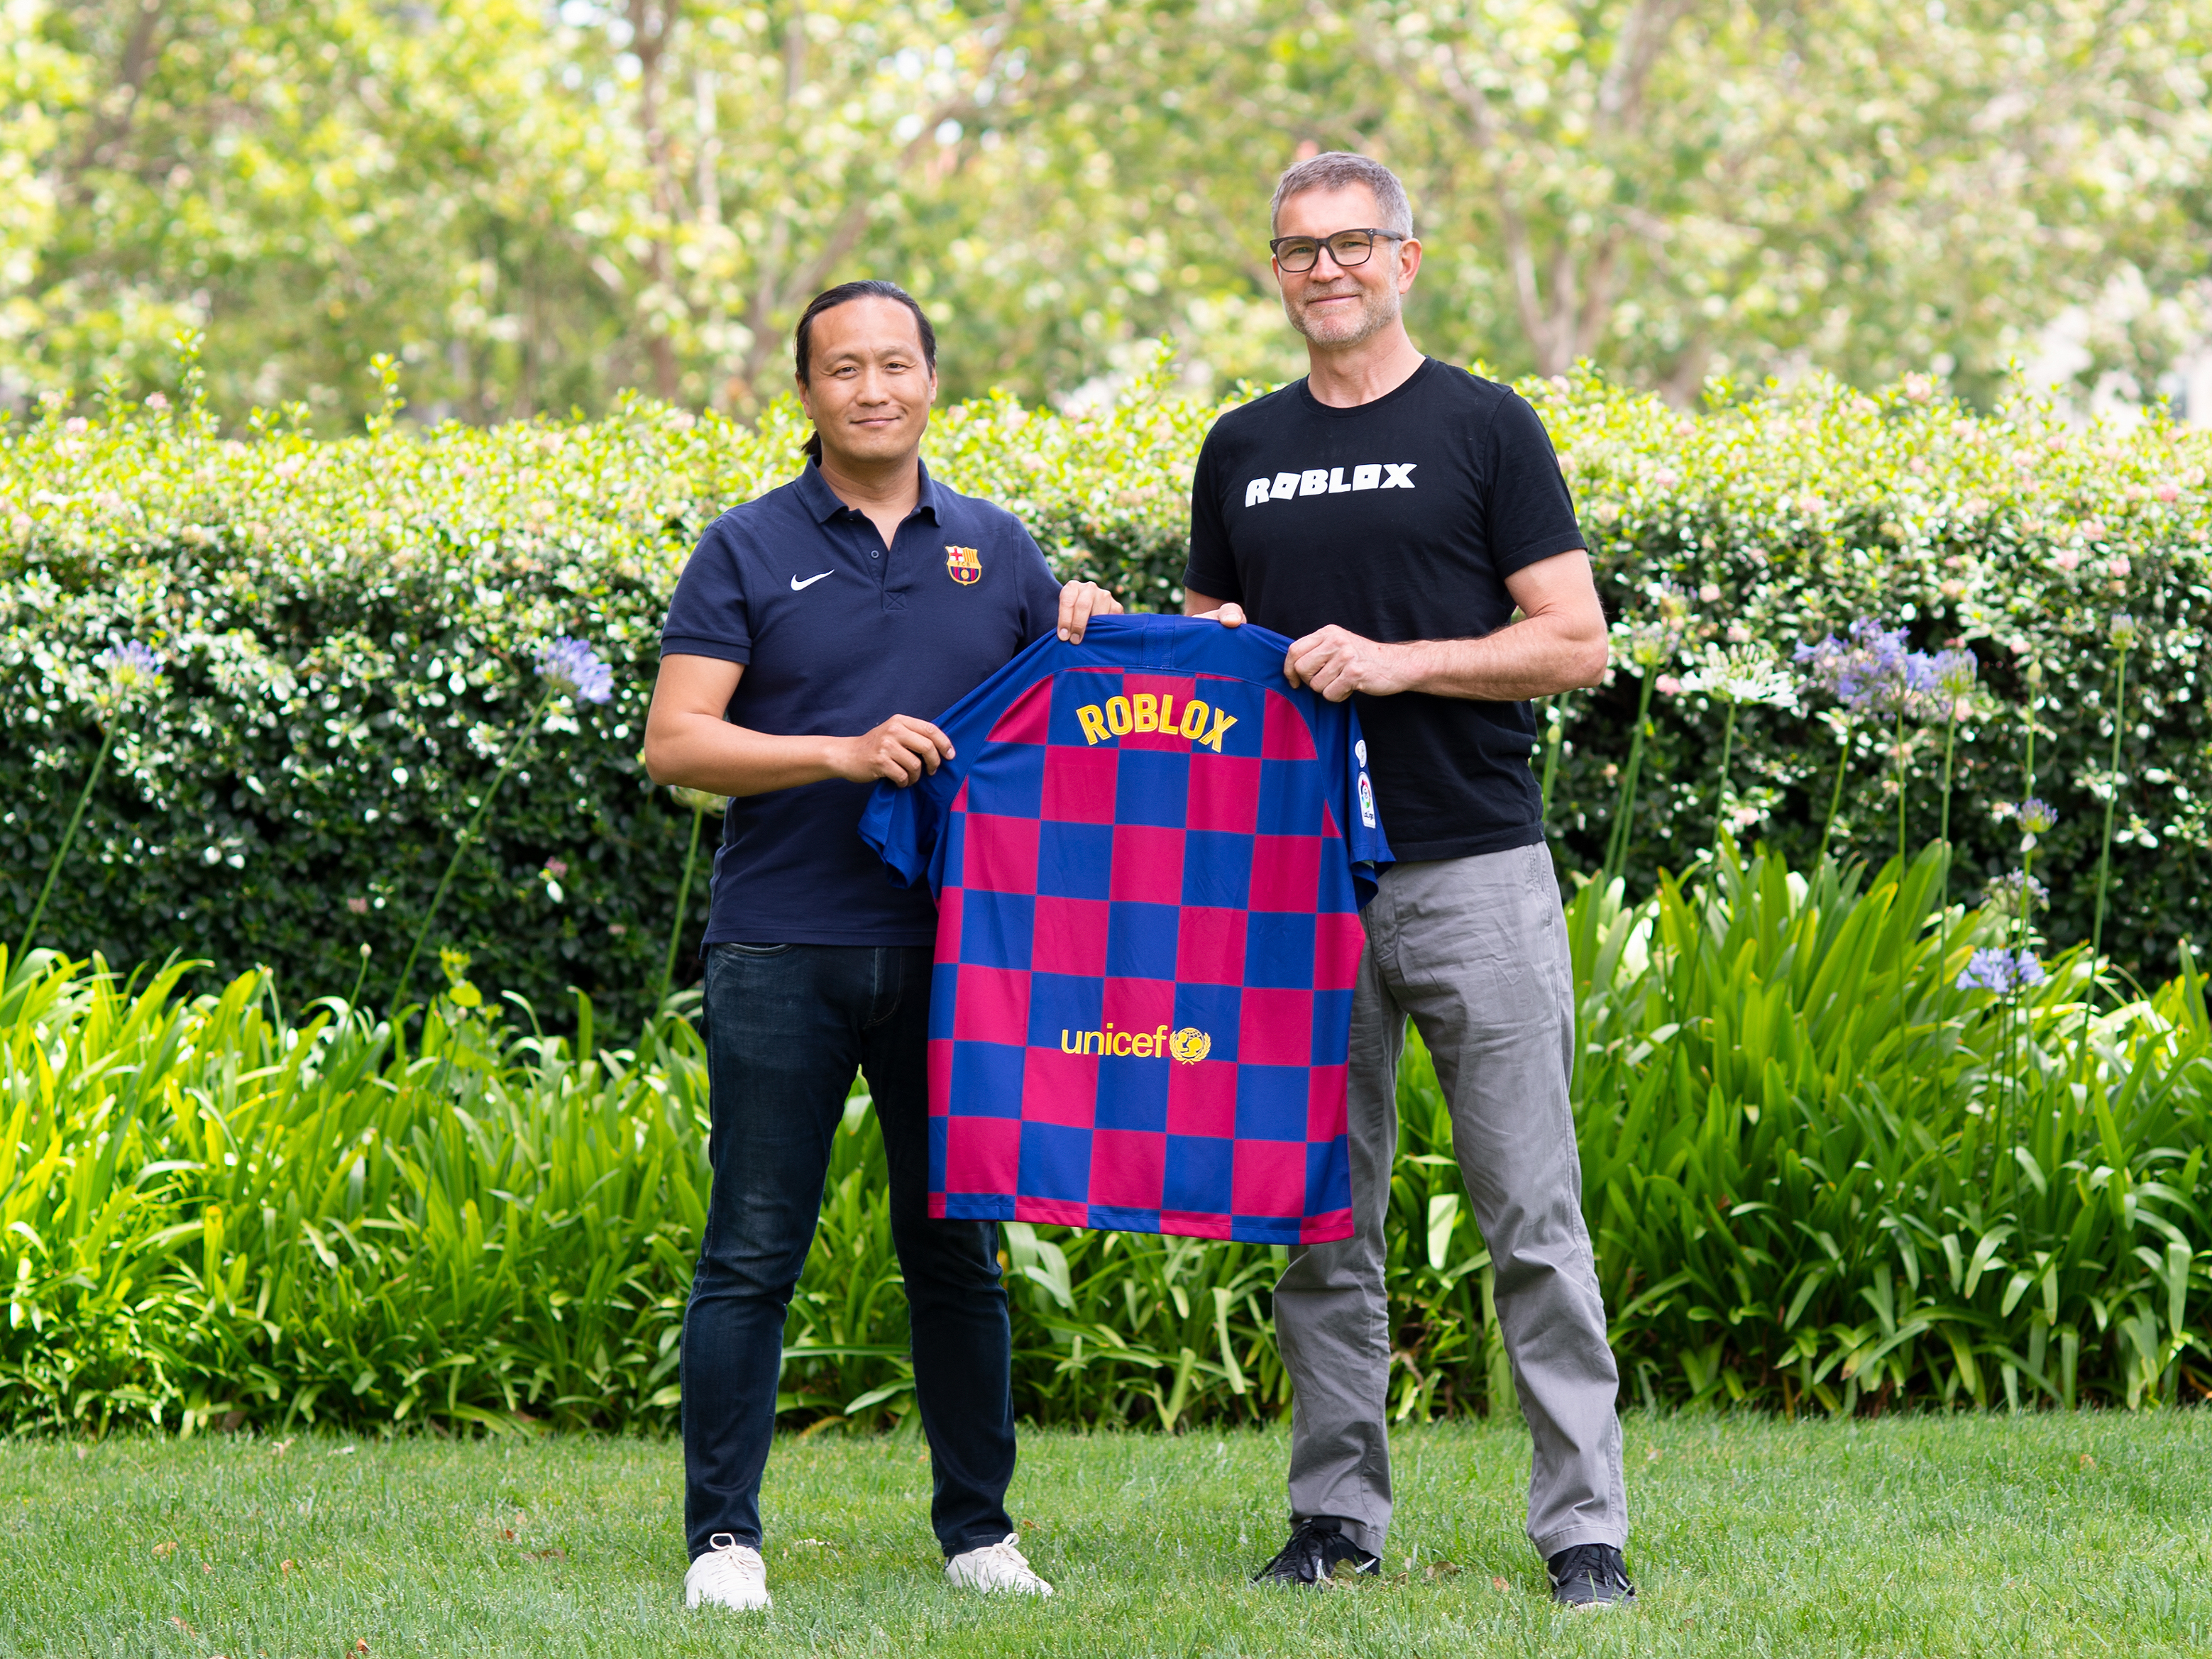 Roblox And Fc Barcelona Partner To Commemorate New Fc Barcelona